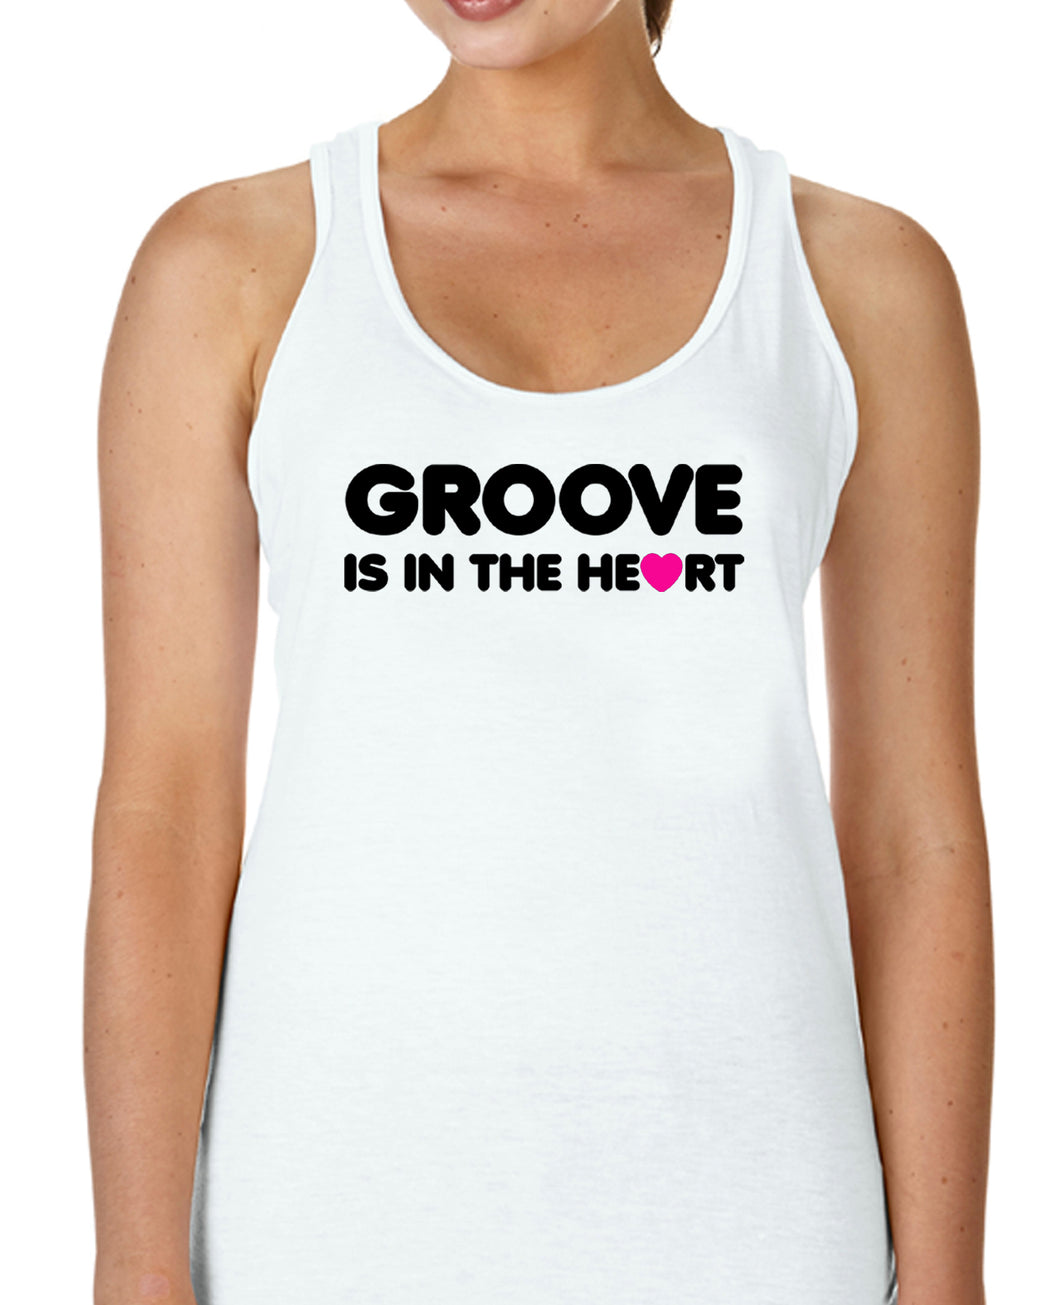 GROOVE IS IN THE HEART - Racerback - SoreTodayStrongTomorrow